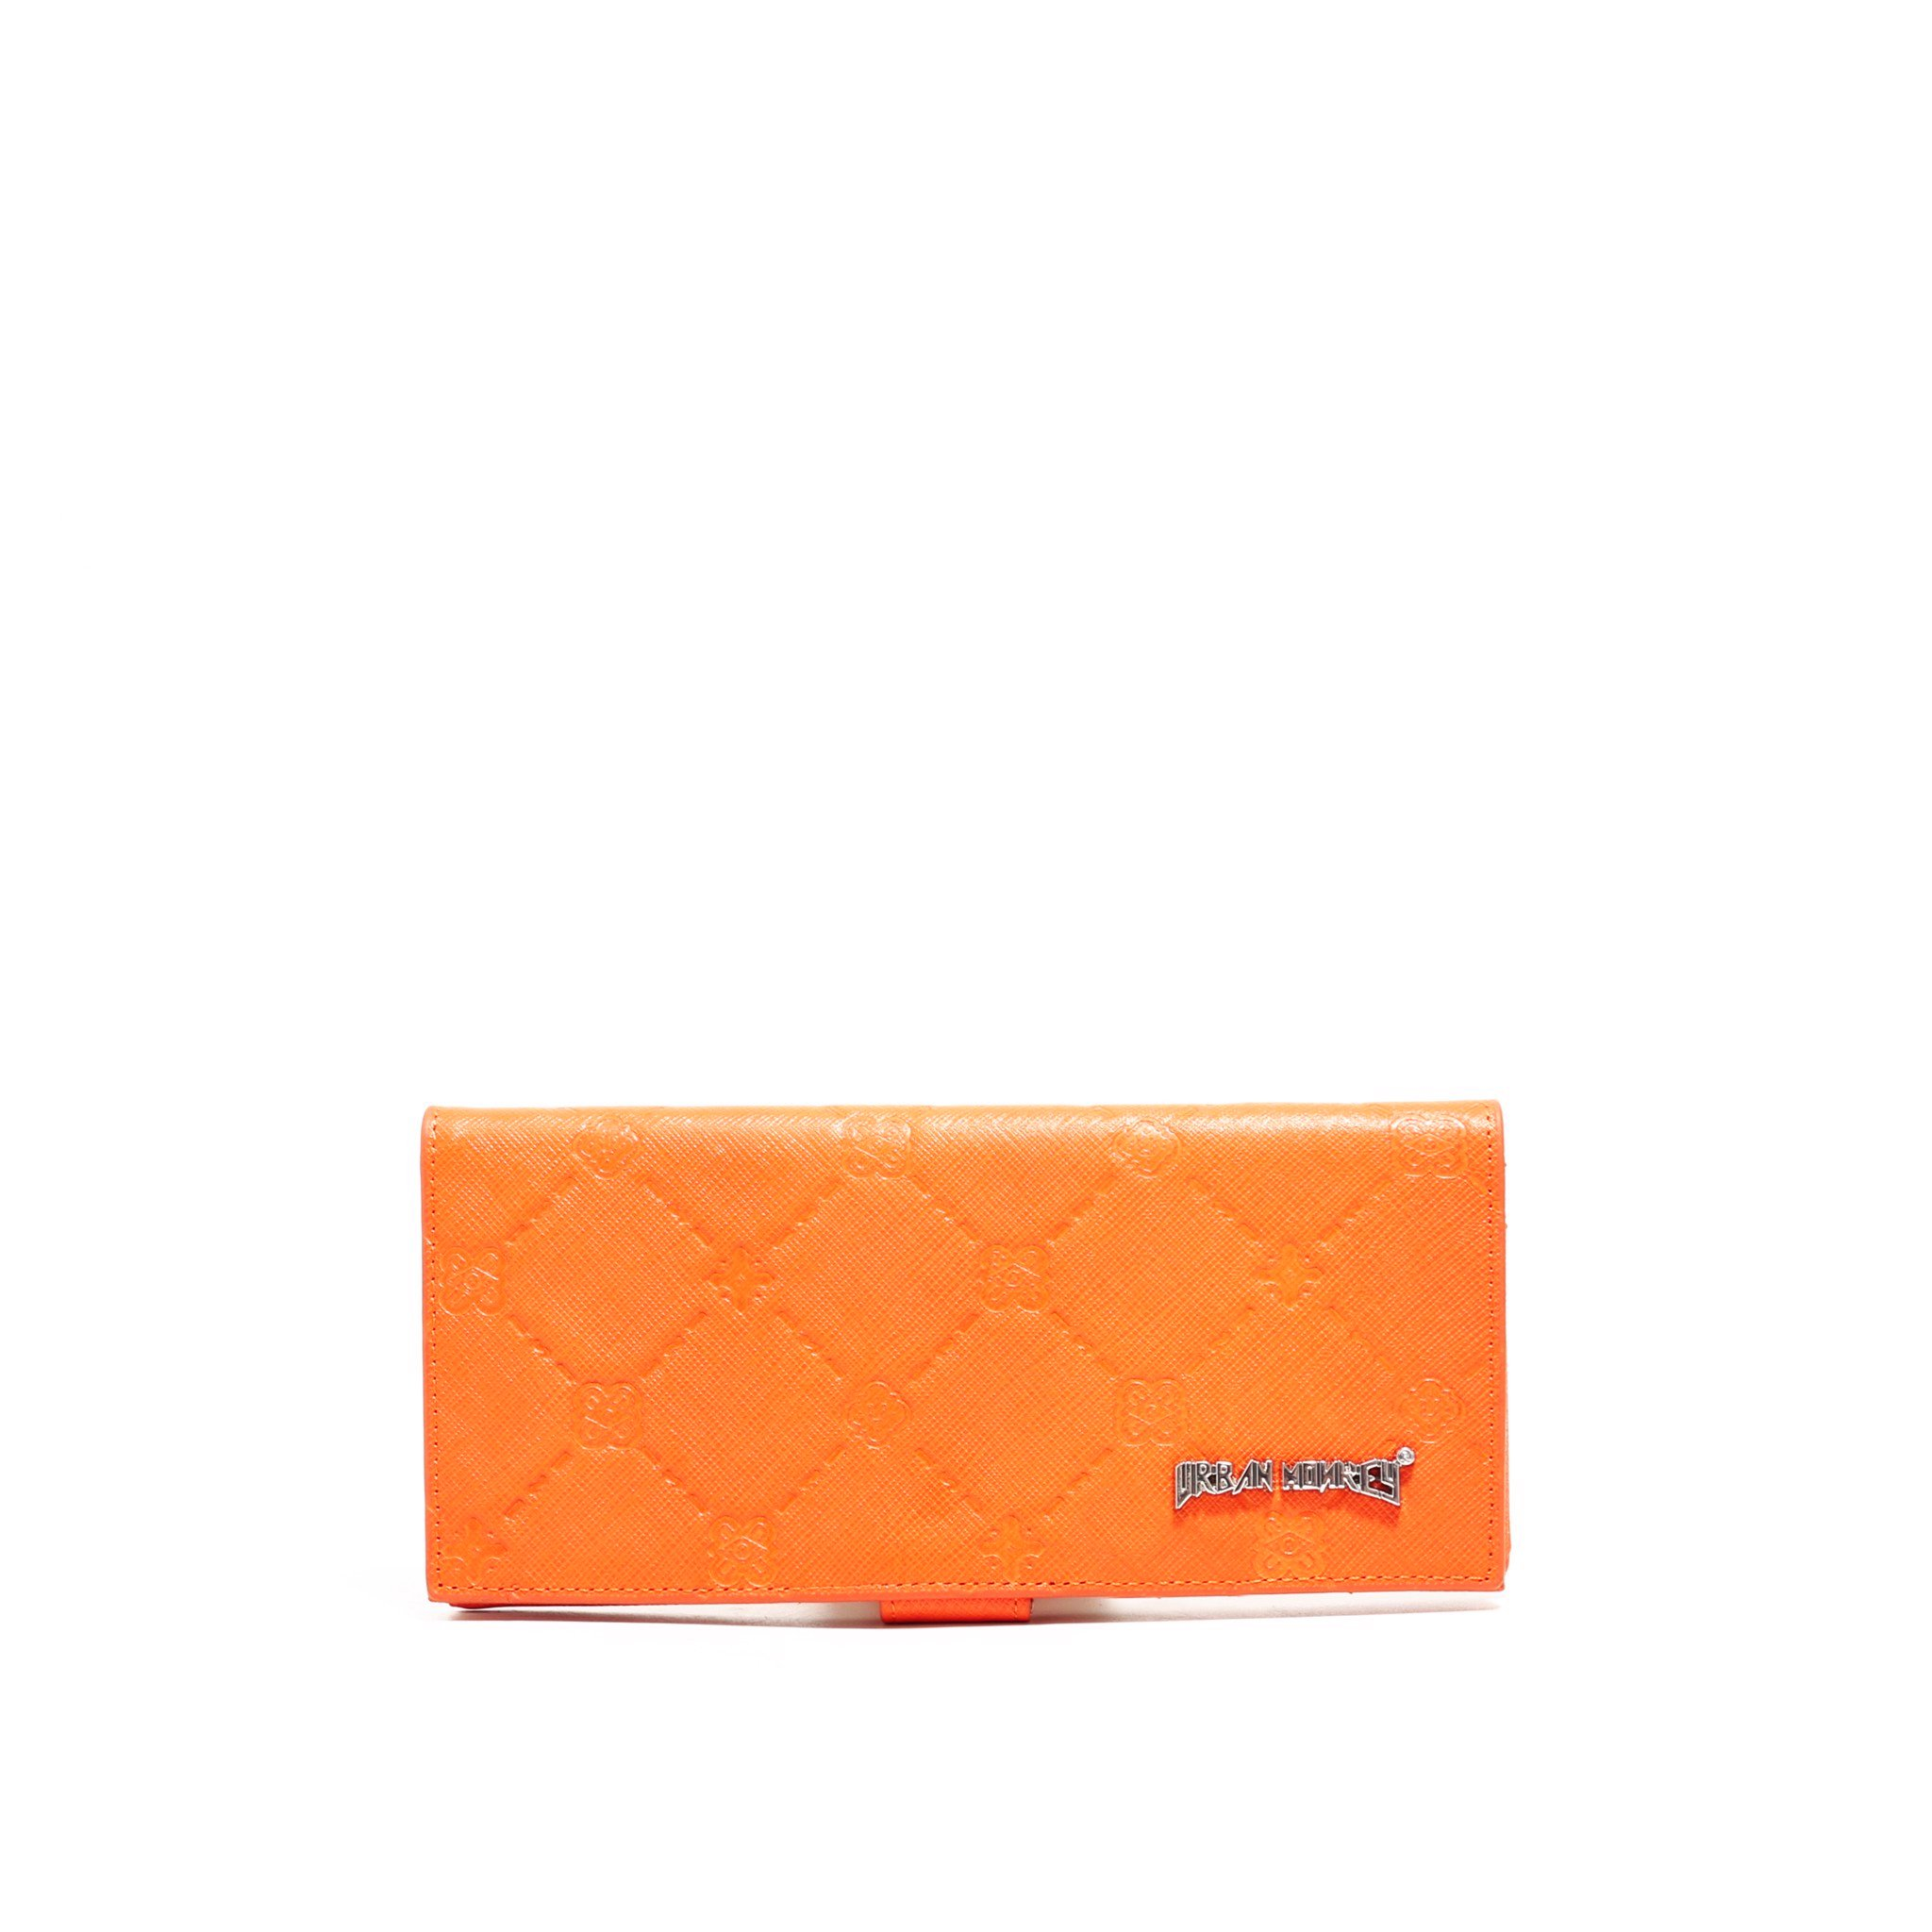 LOLIPOP LONG WALLET NELI